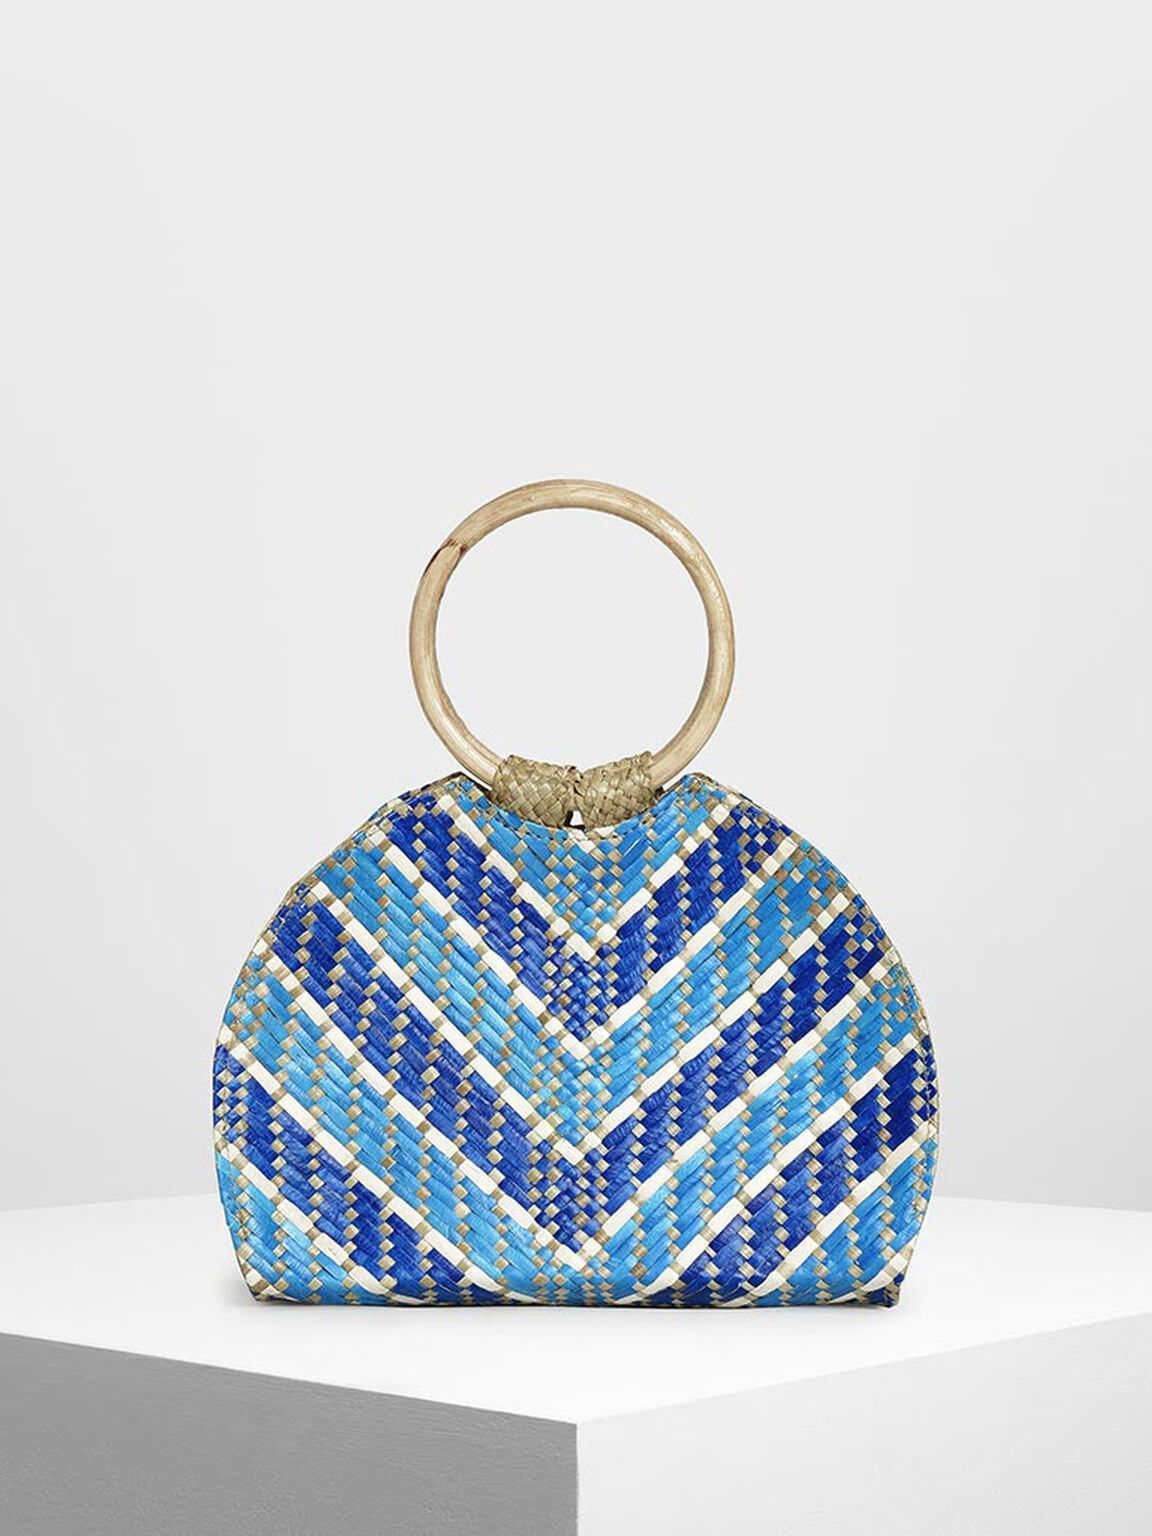 CK-IWD-BAG Handwoven Two-Tone Circle Top Handle Banig Bag